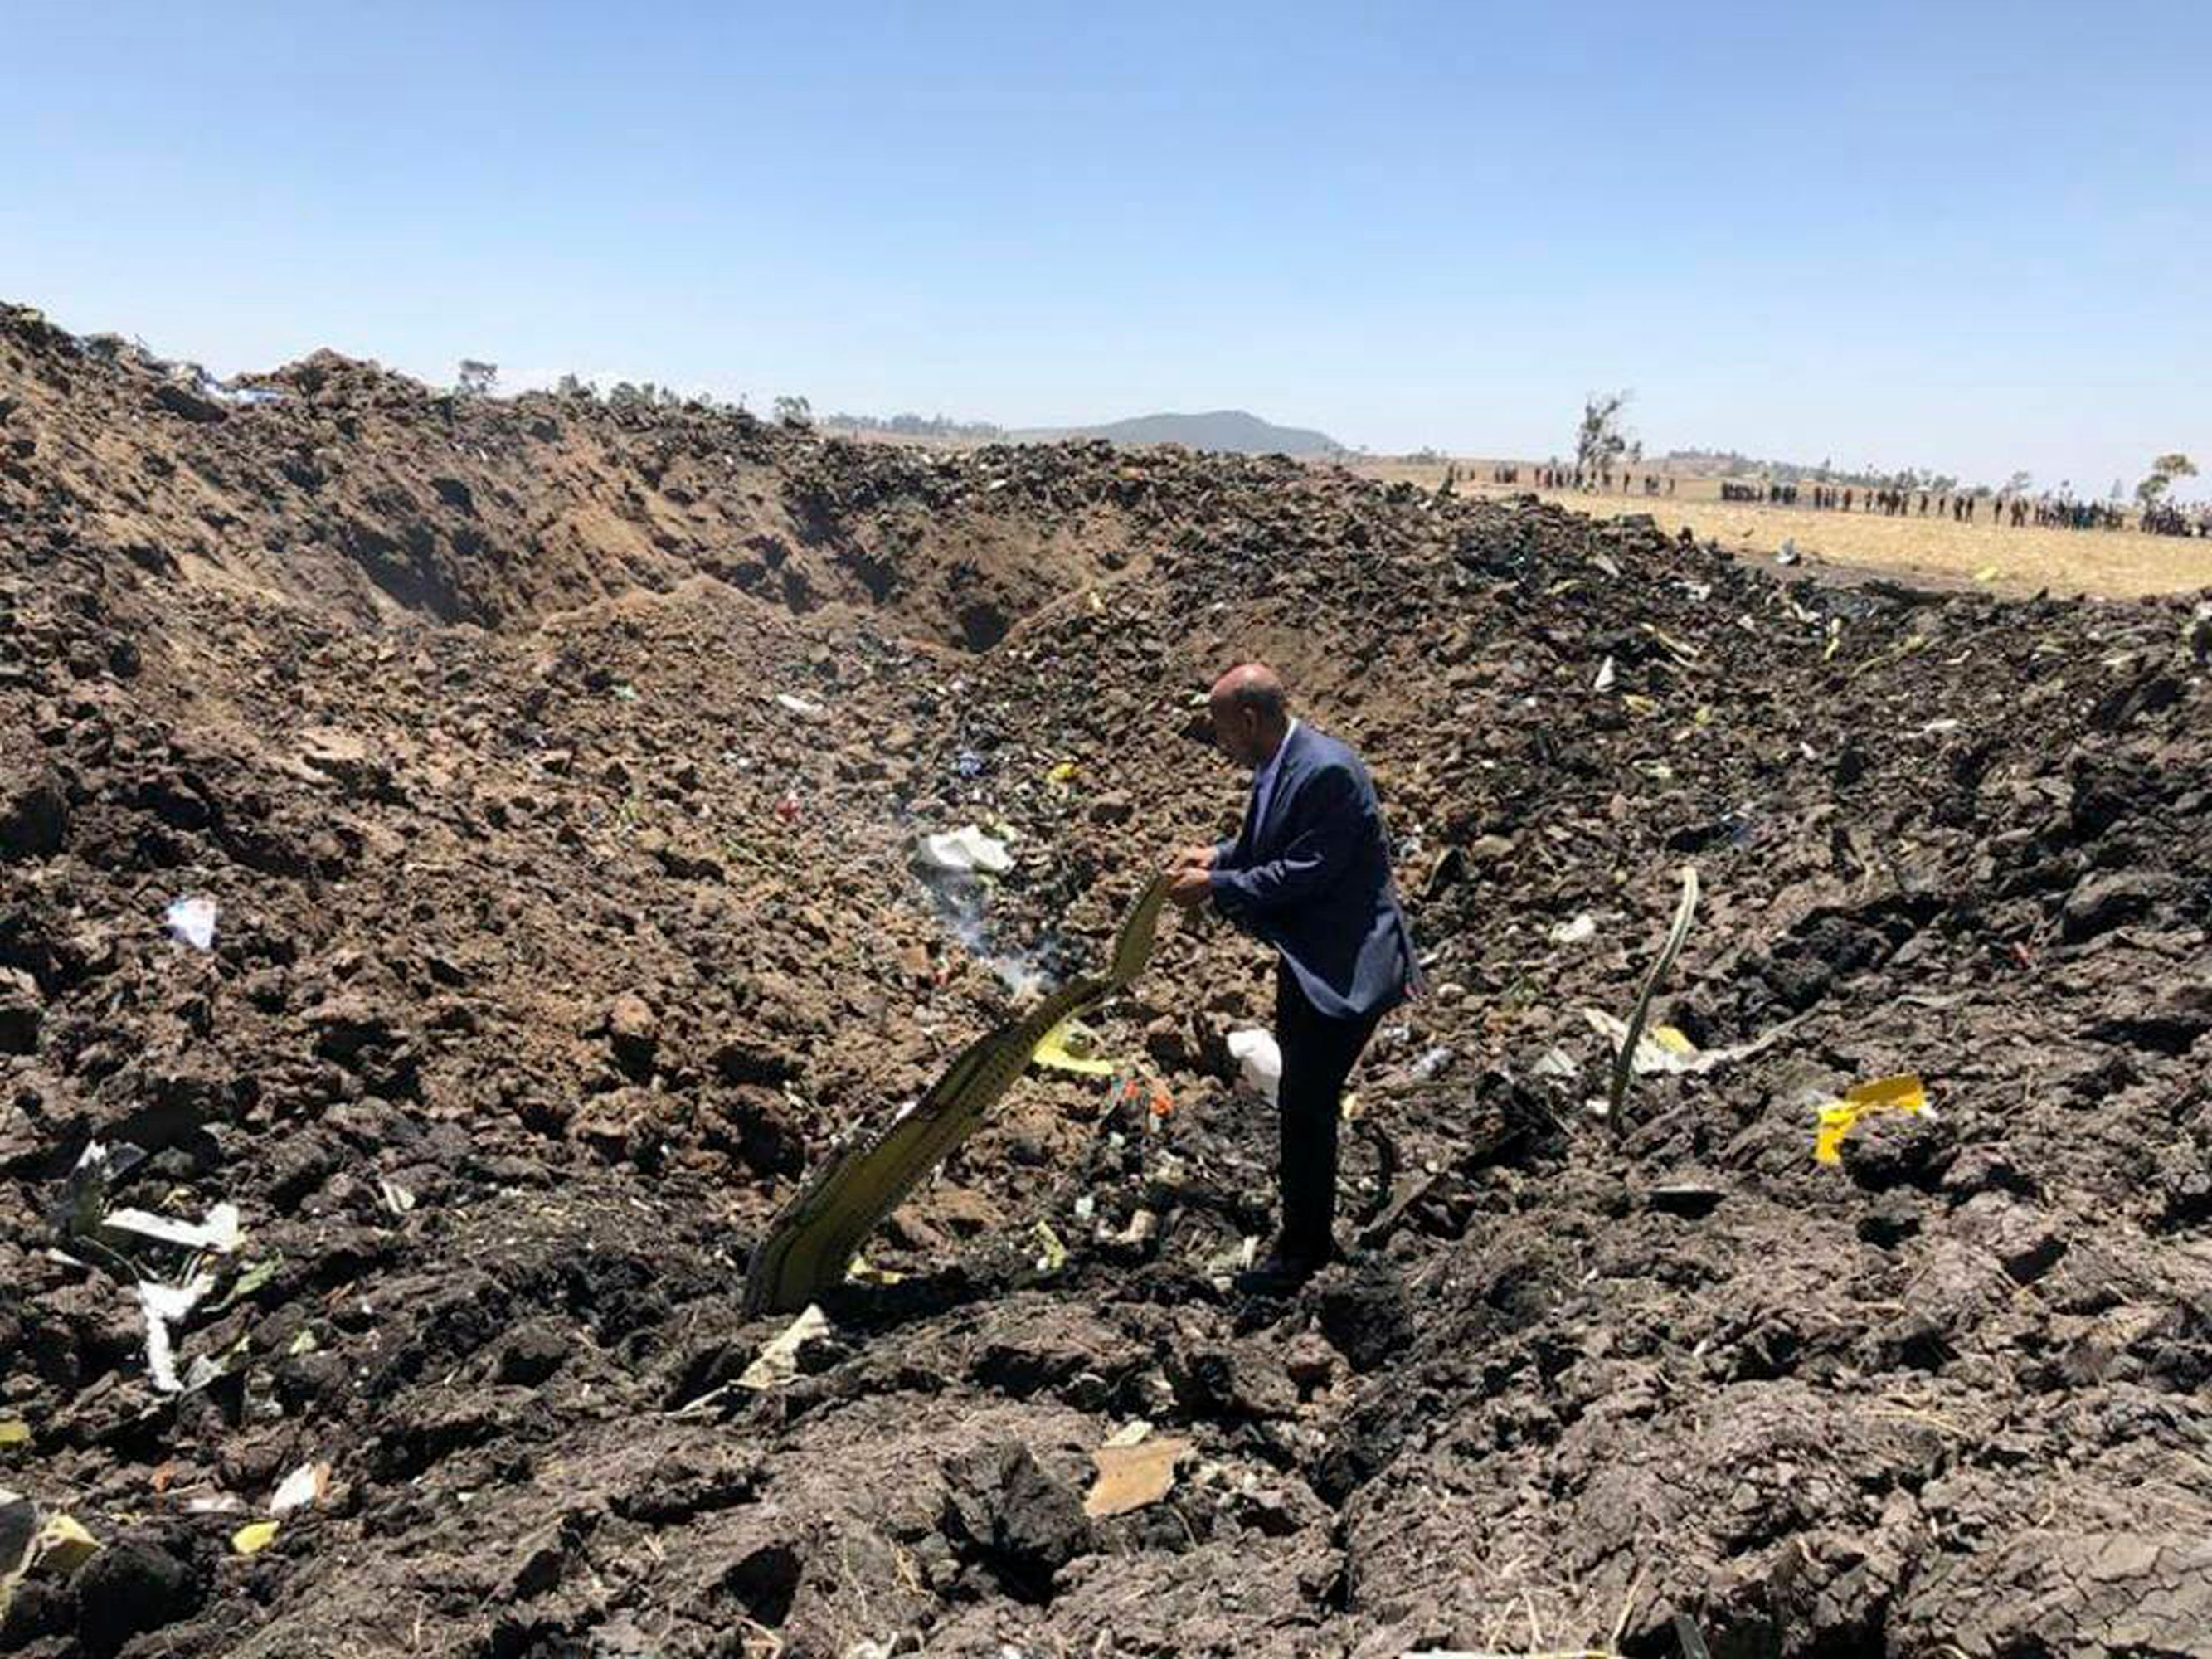 Georgetown Law student among 157 victims of Boeing 737 Max crash in Ethiopia